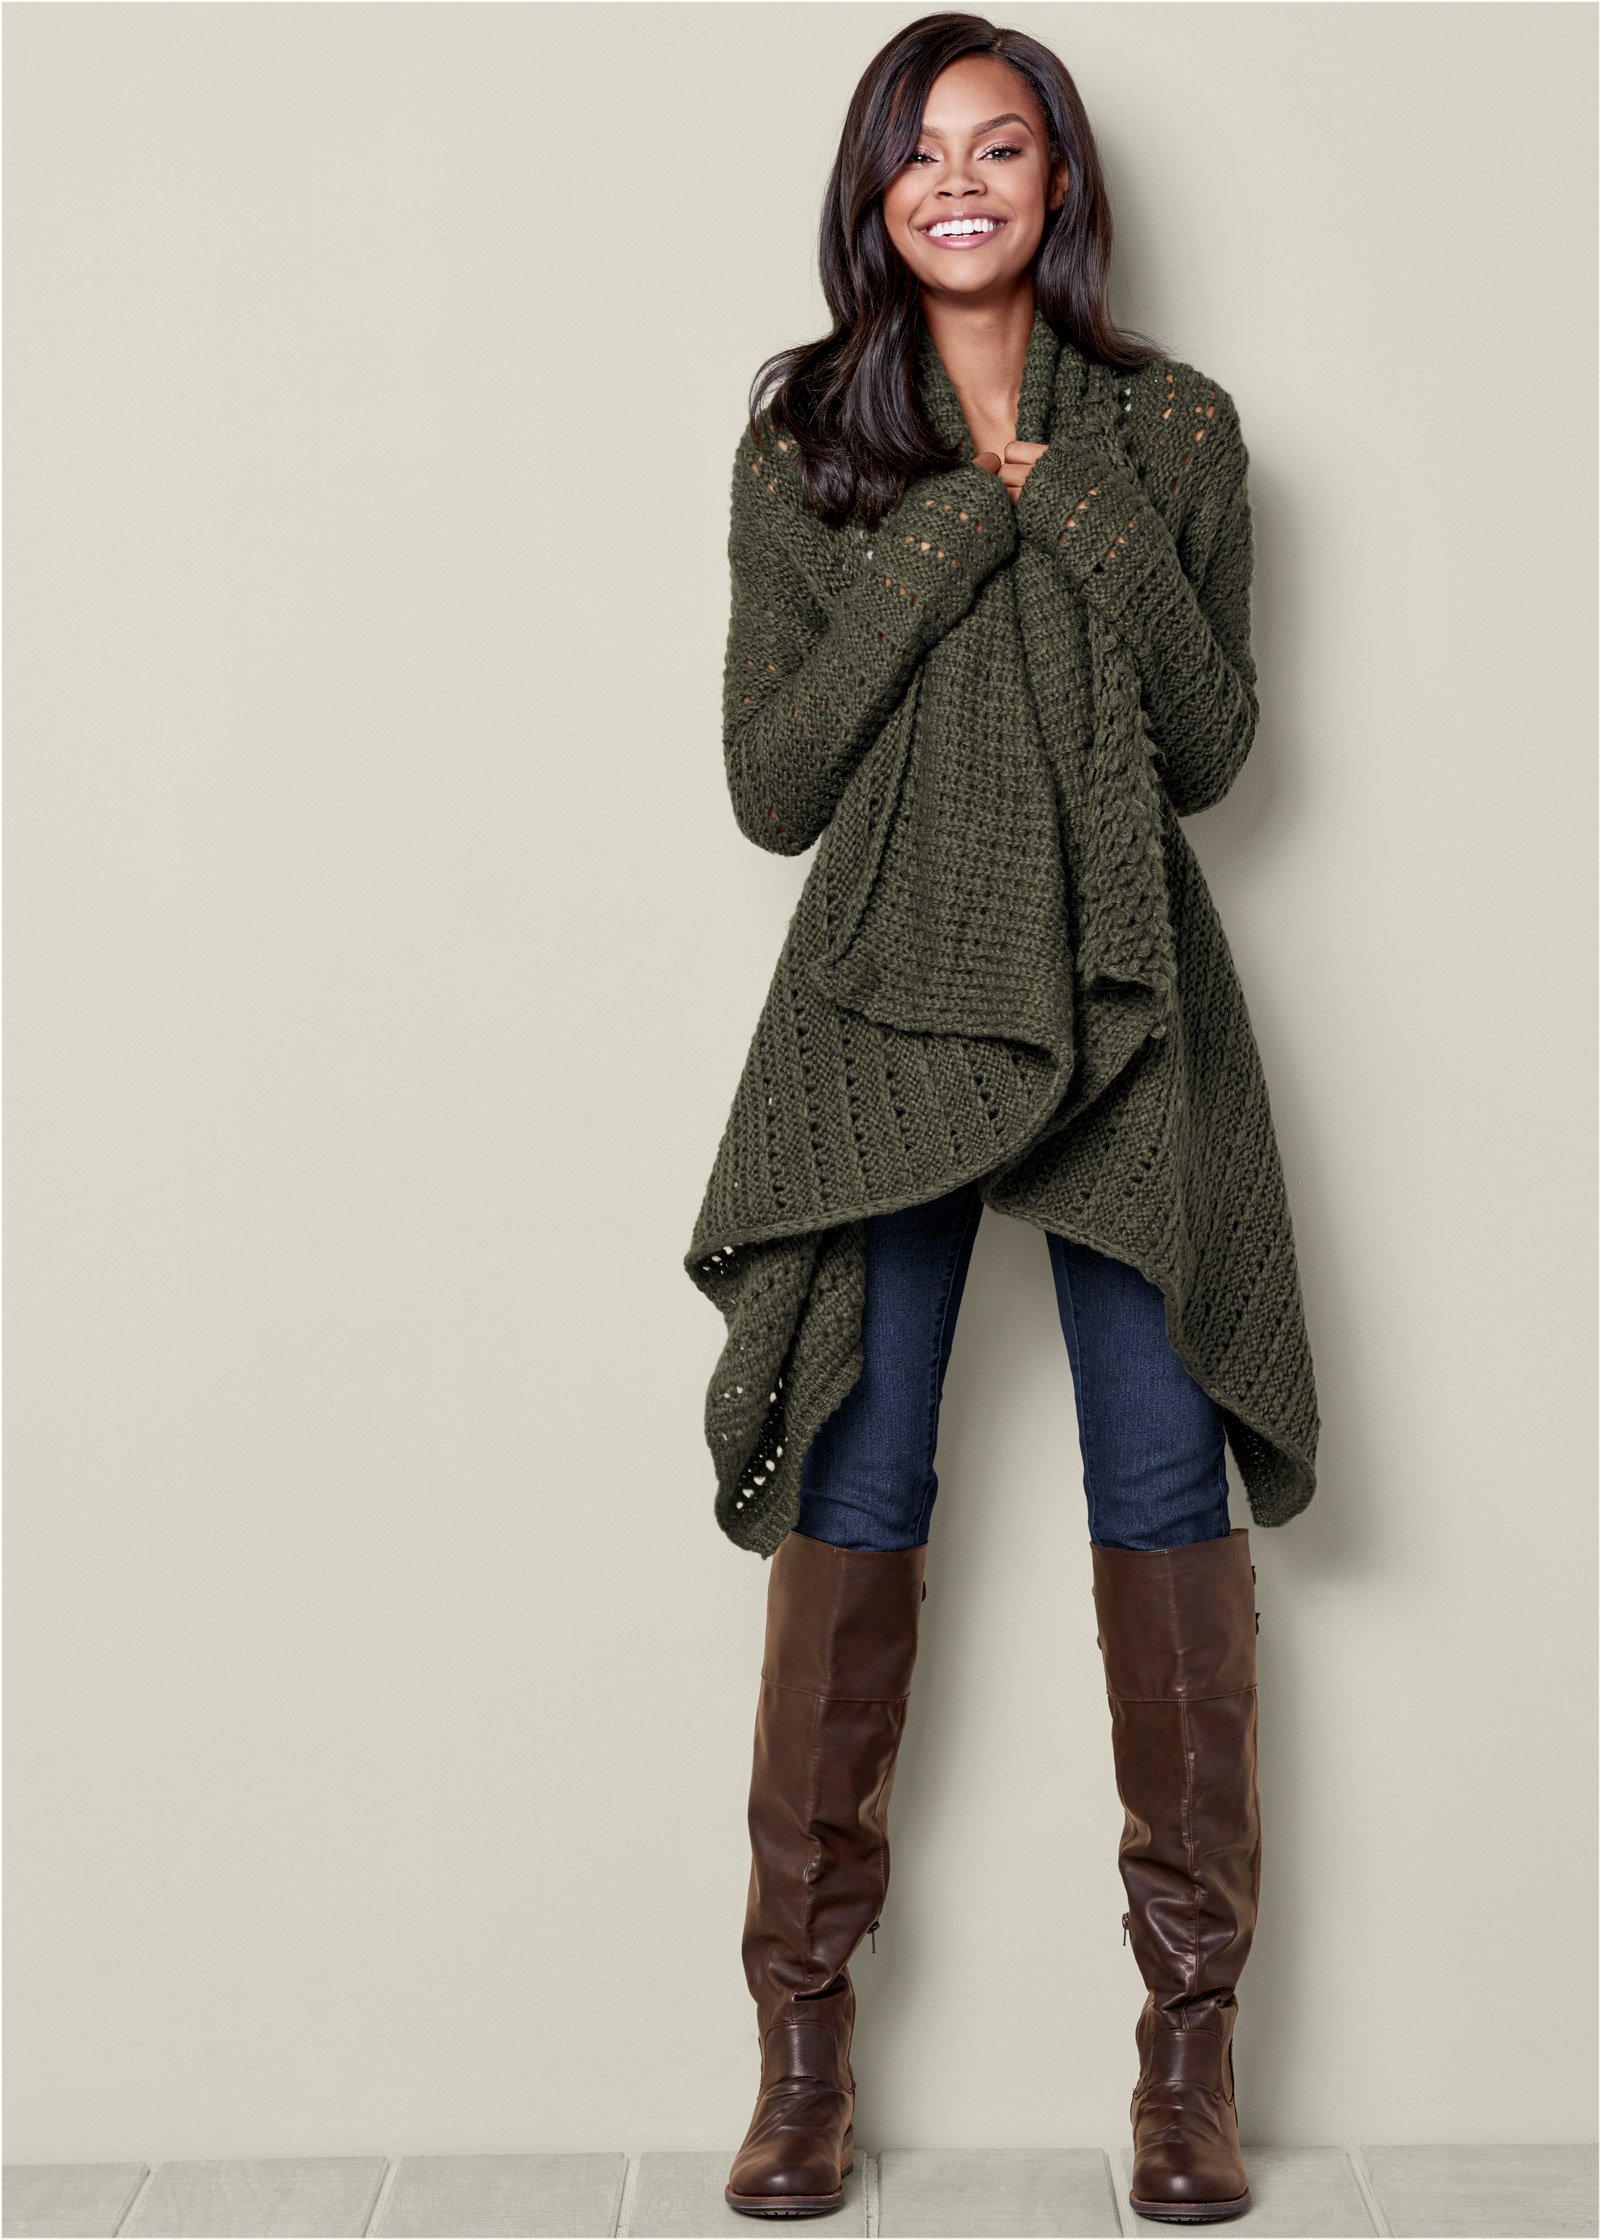 VENUS | OPEN KNIT CARDIGAN in Olive